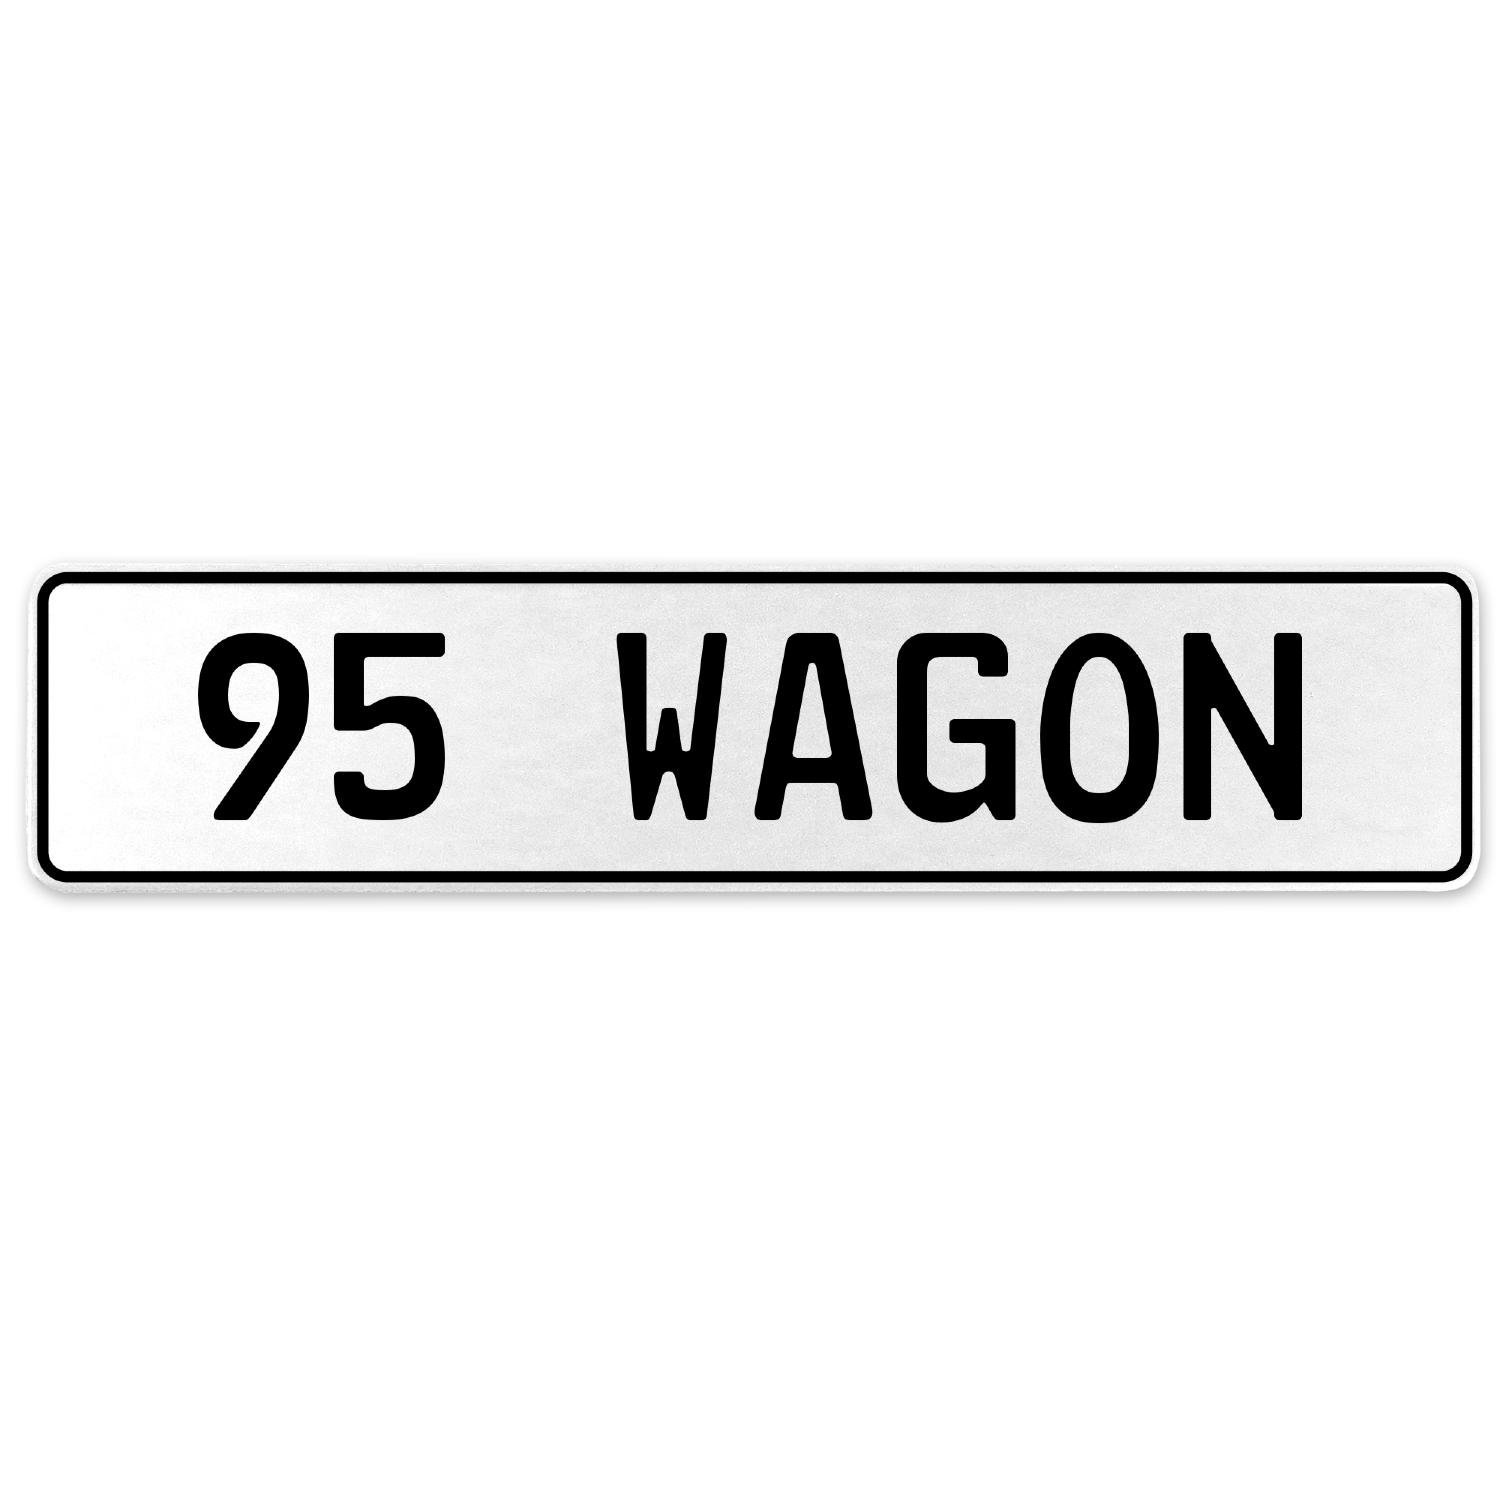 Vintage Parts 558256 95 Wagon White Stamped Aluminum European License Plate